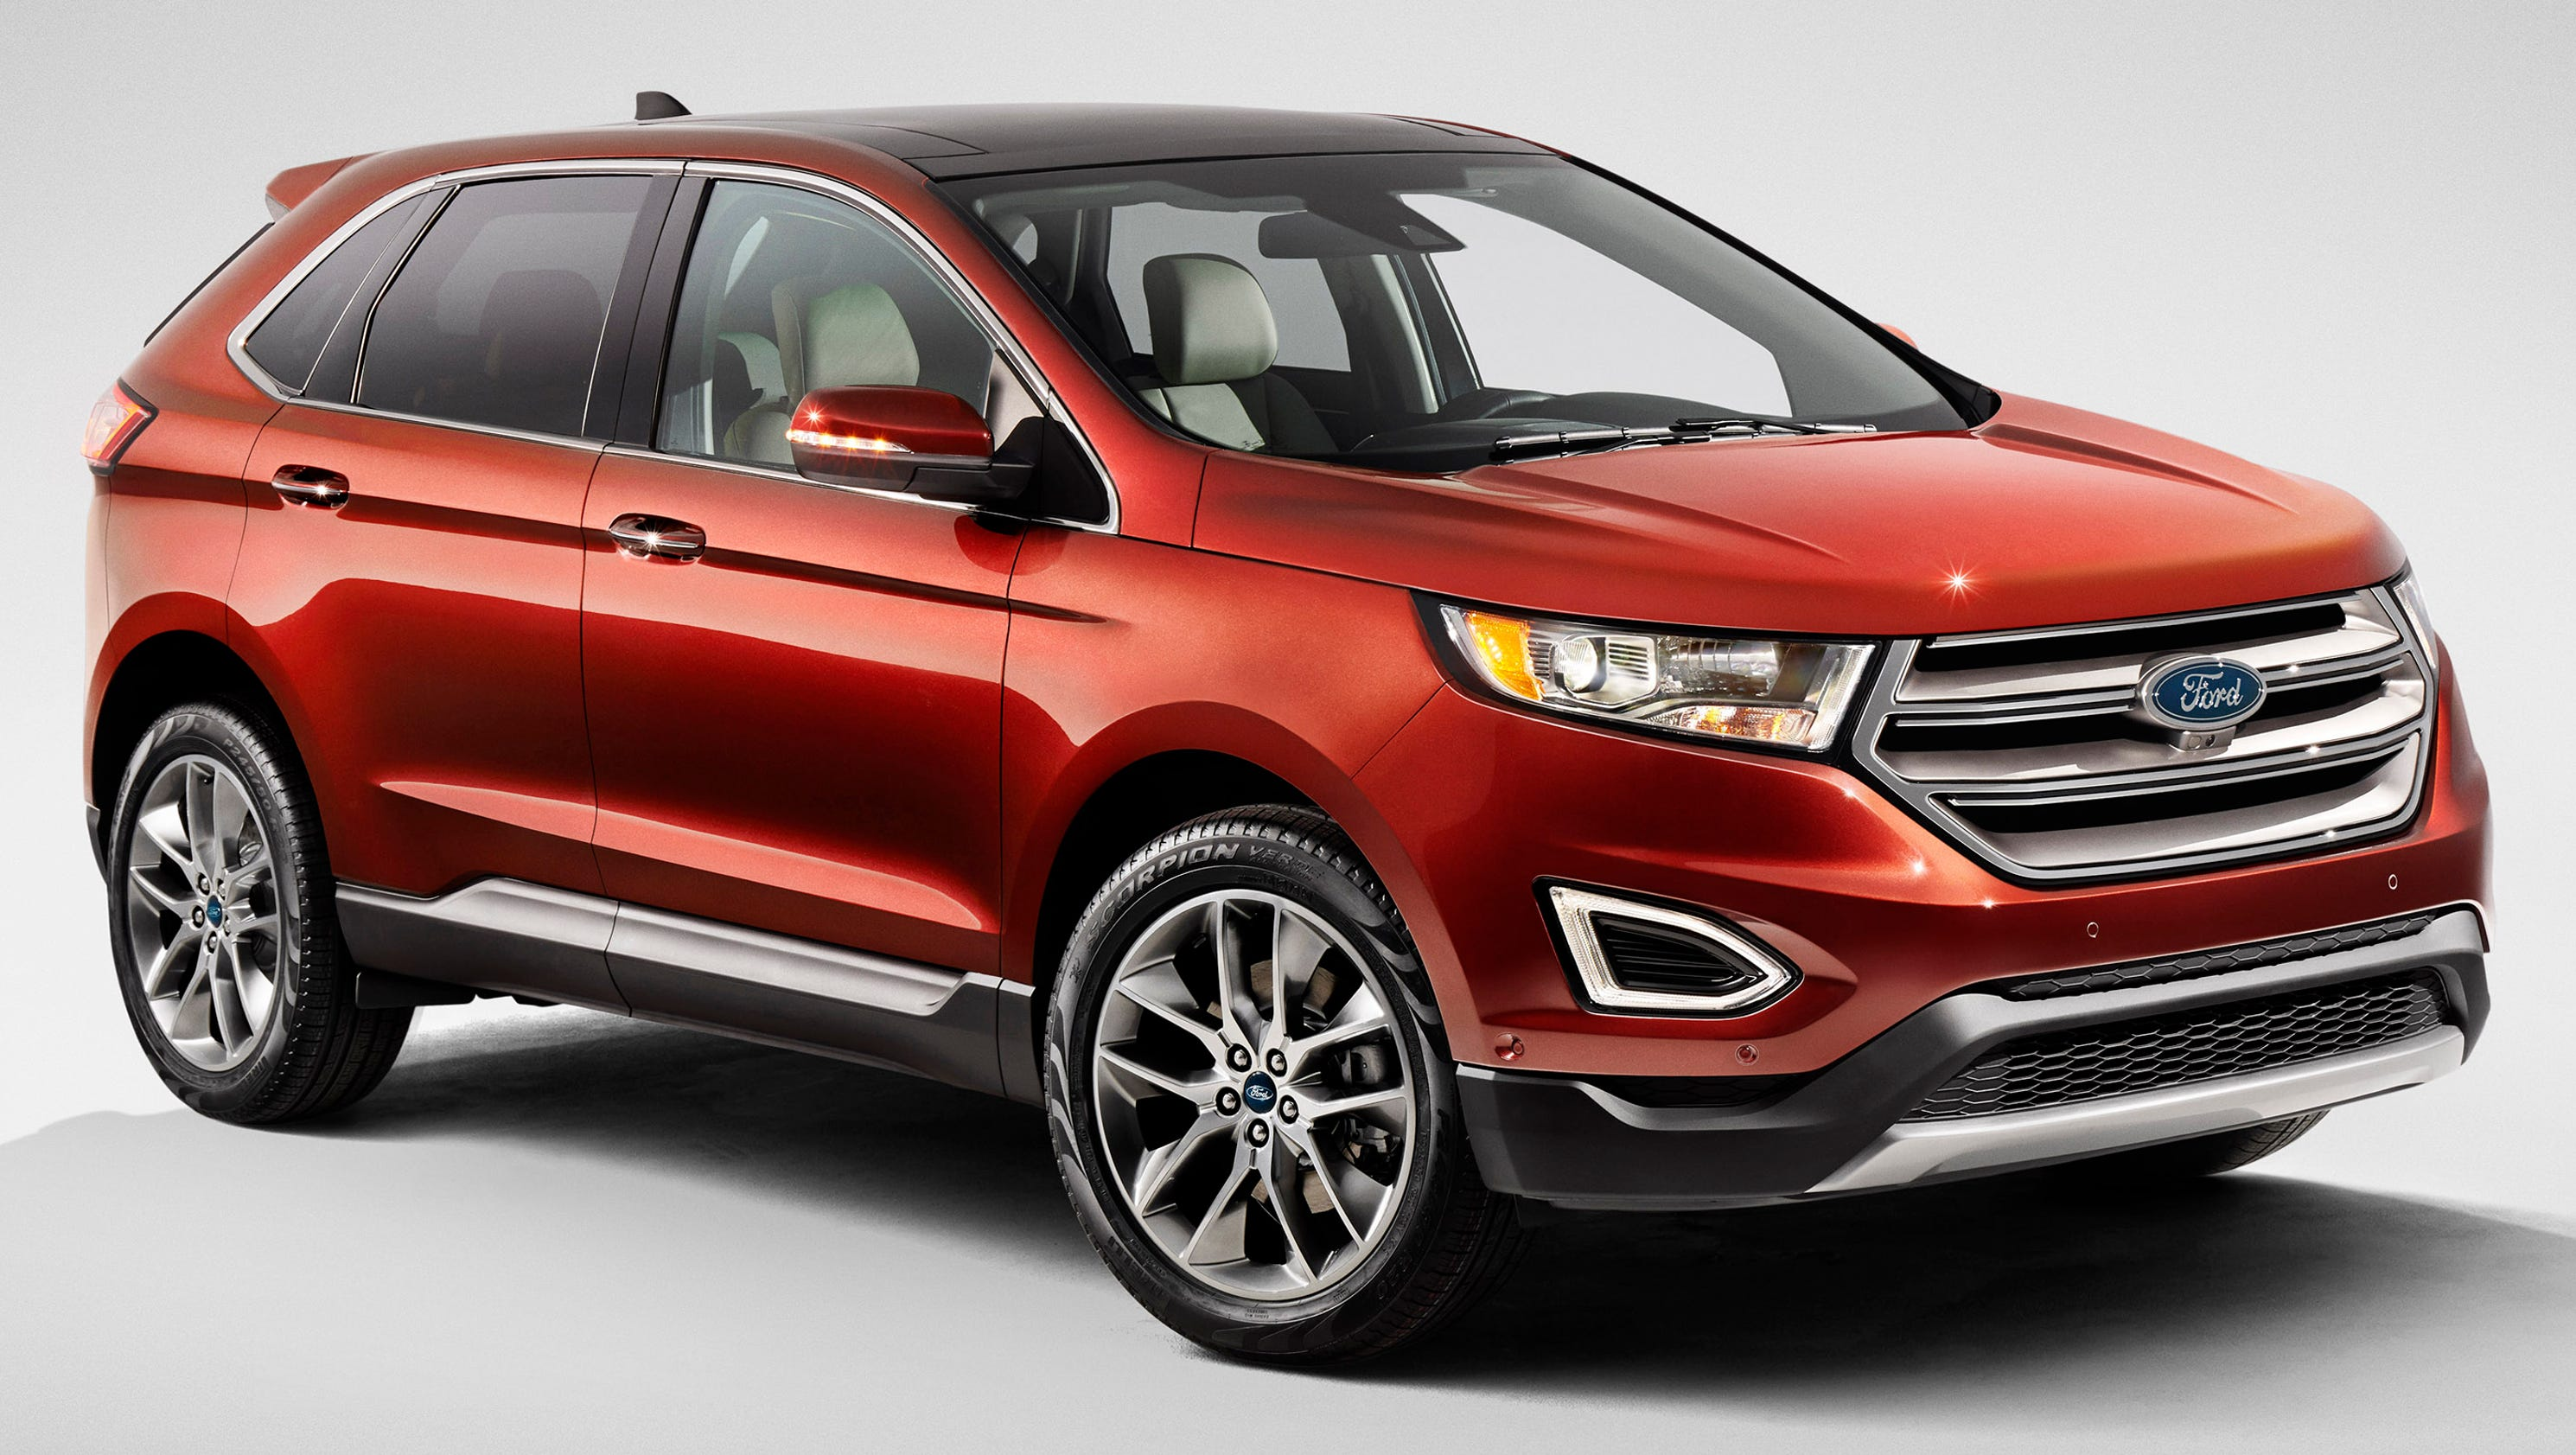 review ford 39 s new edge suv has space power. Black Bedroom Furniture Sets. Home Design Ideas